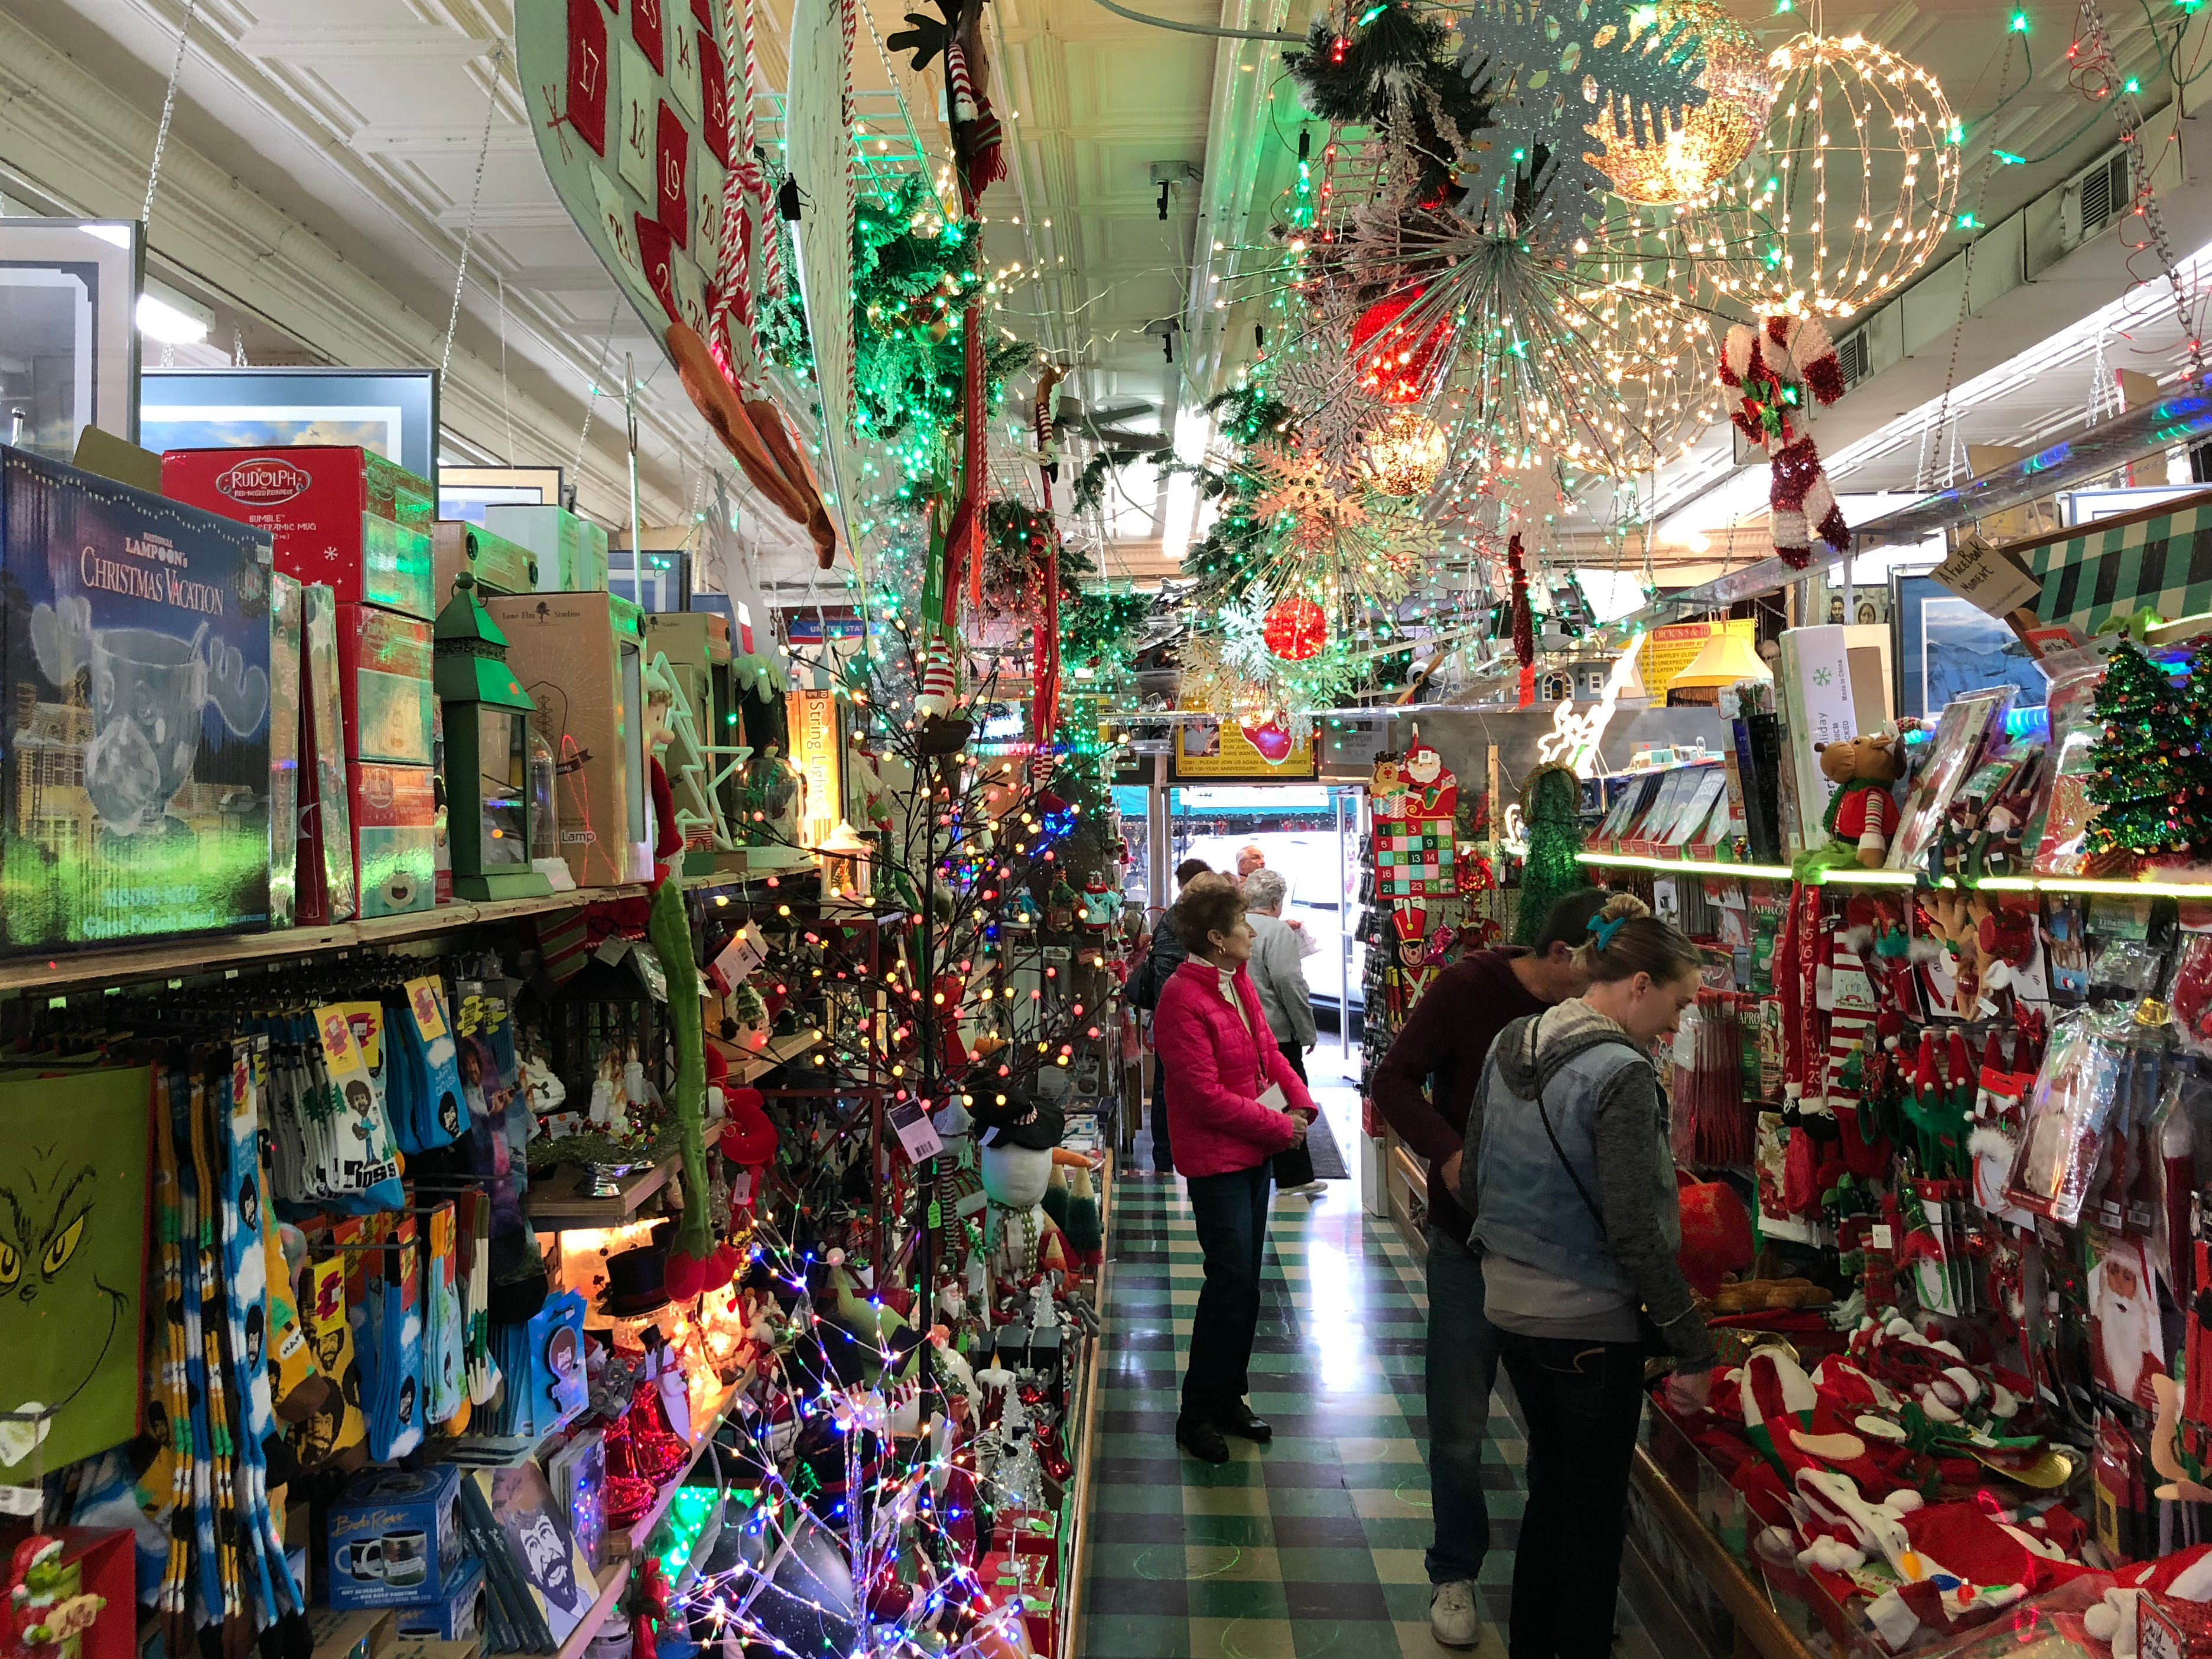 Well-stocked doesn't begin to describe Dick's 5 & 10, one of the country's few remaining variety stores of its kind. Visitors could make a serious dent in their Christmas shopping and delight family and friends with quirky gifts from Dick's.